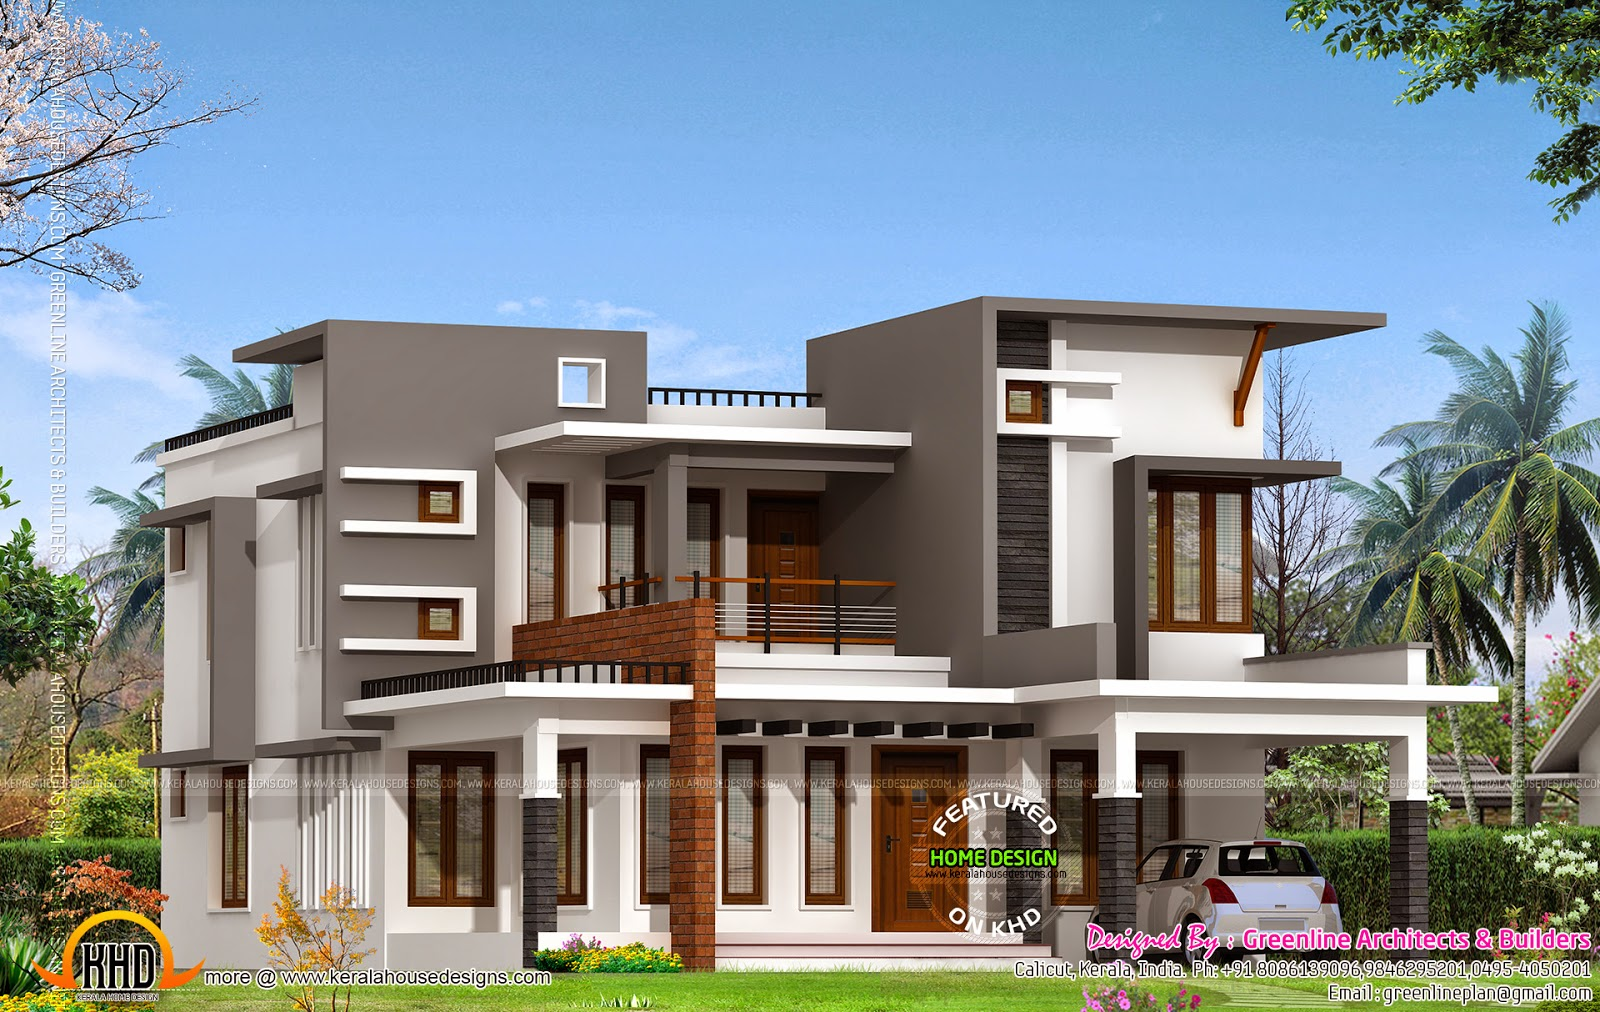 Contemporary house with estimate cost 28 lakhs kerala Contemporary home designs and floor plans